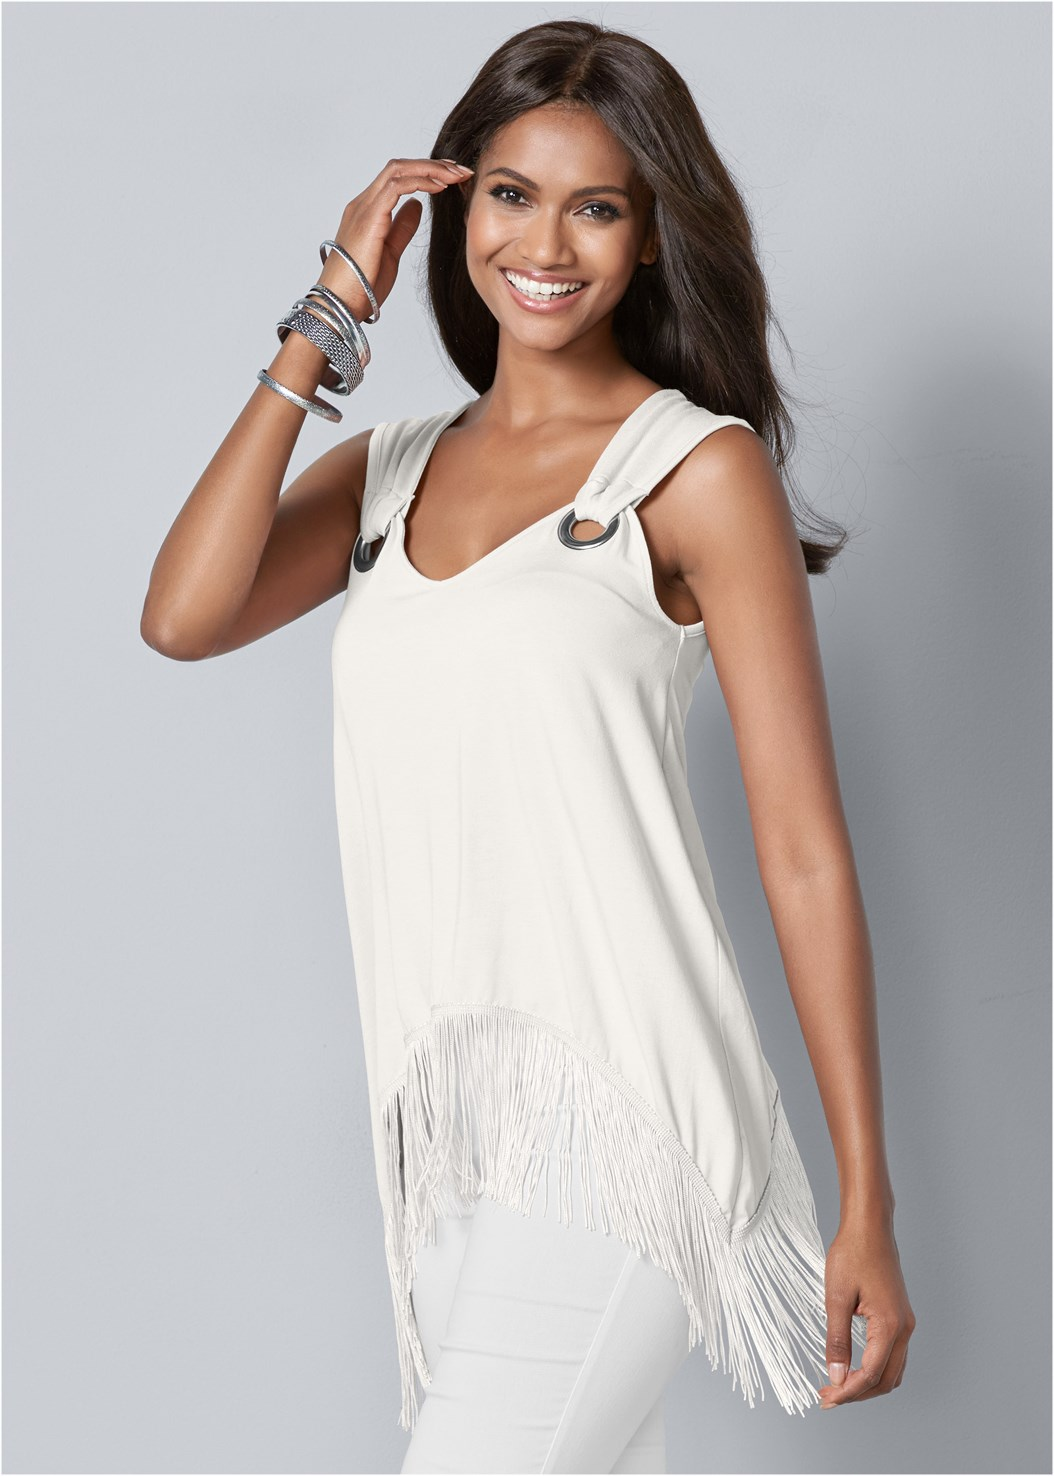 Fringe Detail Top,Mid Rise Full Length Slimming Stretch Jeggings,High Heel Strappy Sandals,Circle Ring Detail Handbag